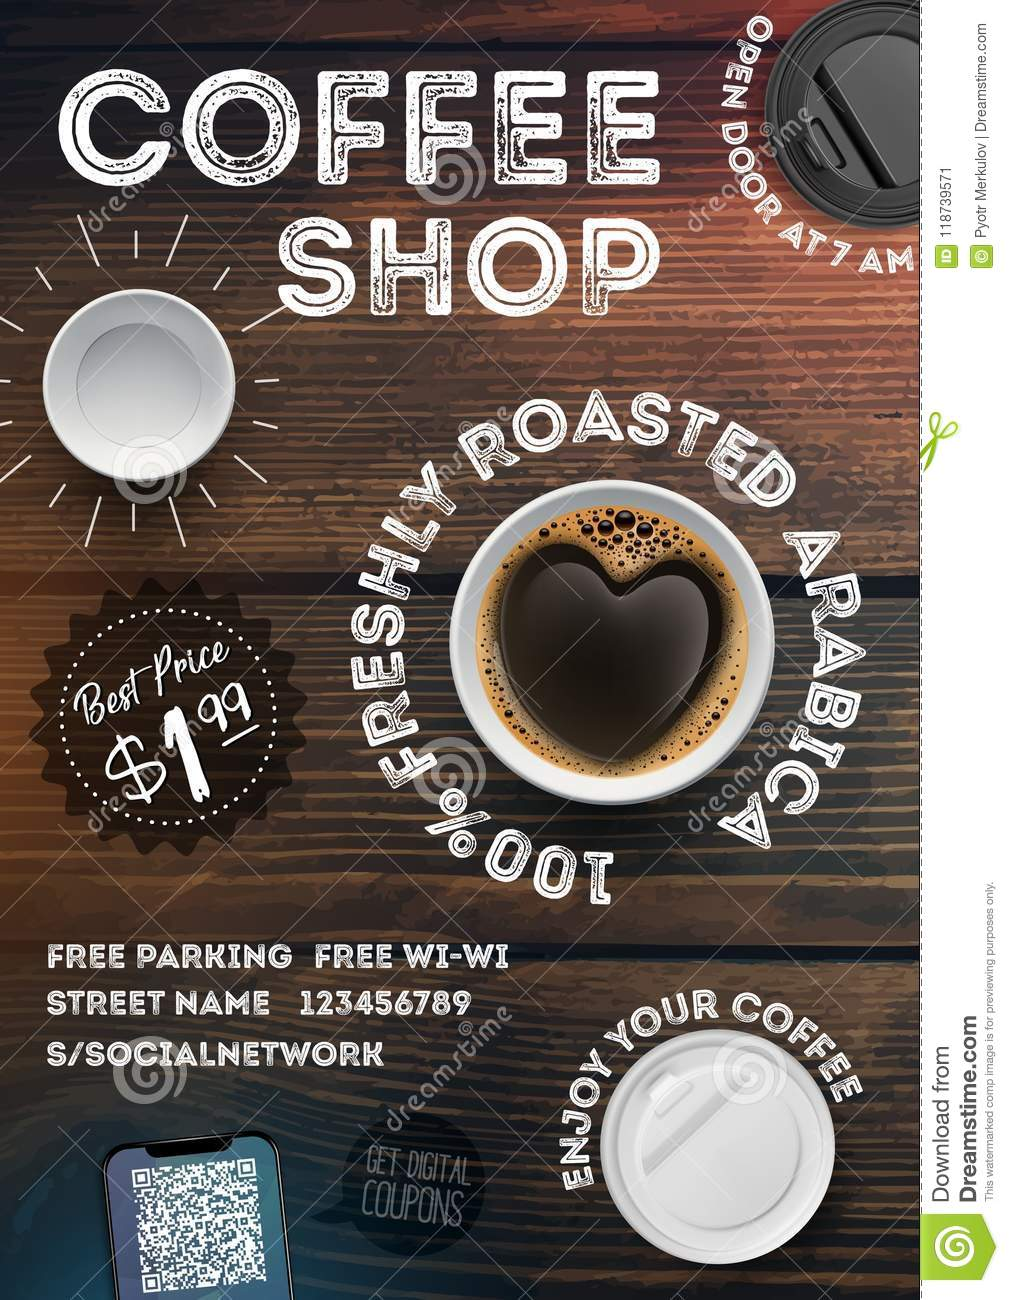 Coffee Shop Flyer Template On Vintage Wood Texture Background Advertising Invitation In Brochures Posters Banner Leaflet Stock Vector Illustration Of Interior Beverage 118739571